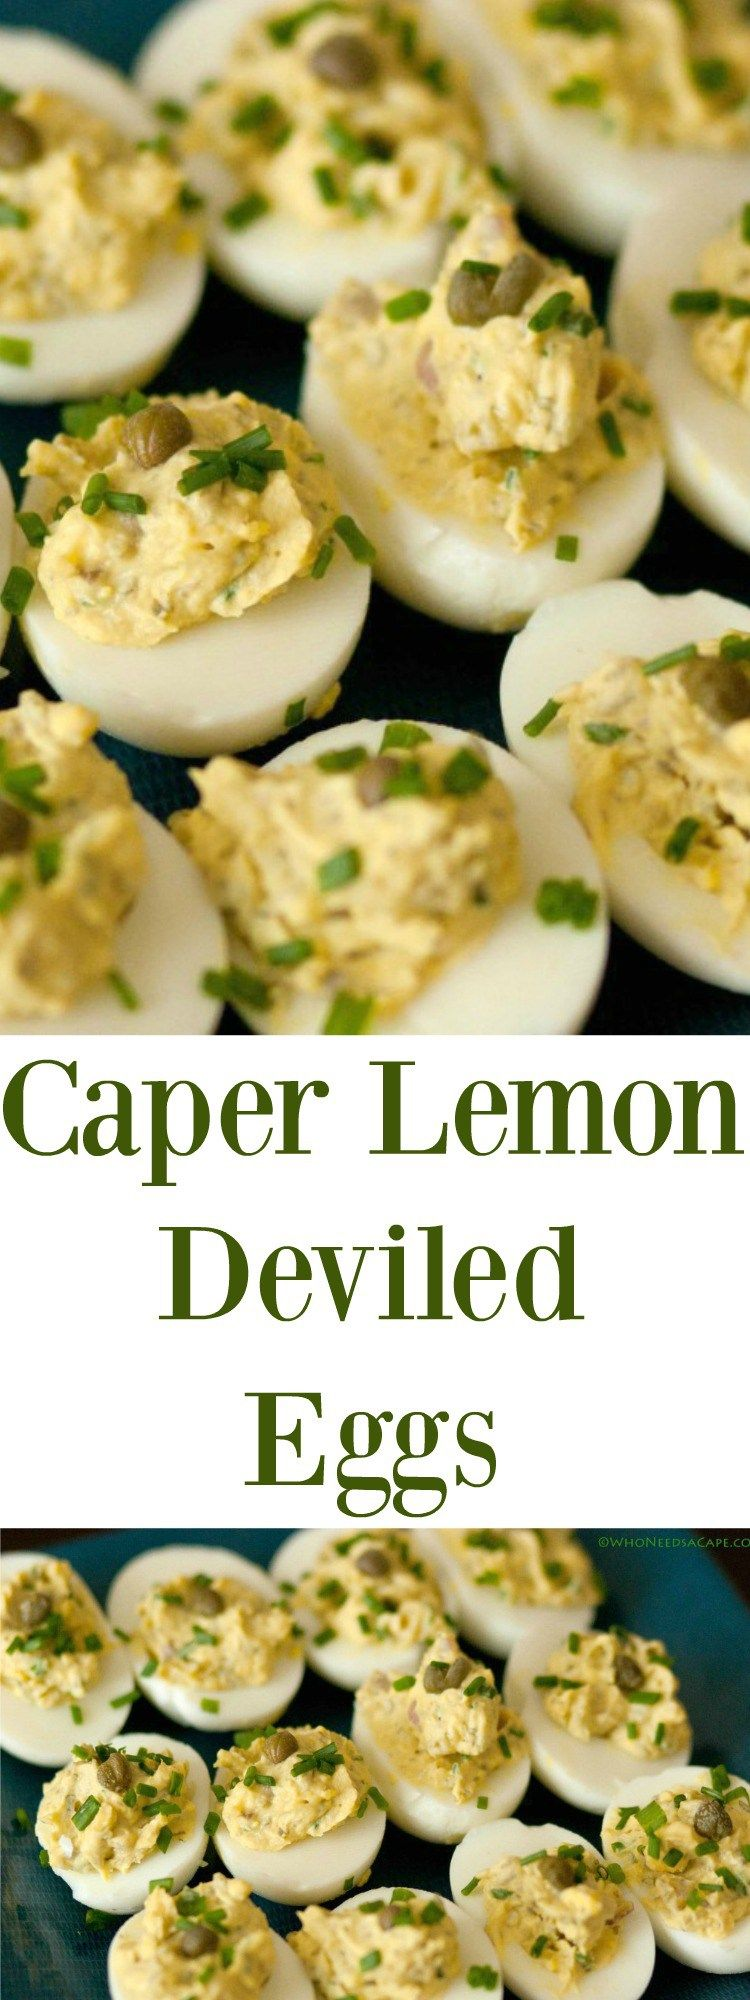 Caper Lemon Deviled Eggs | Who Needs A Cape?